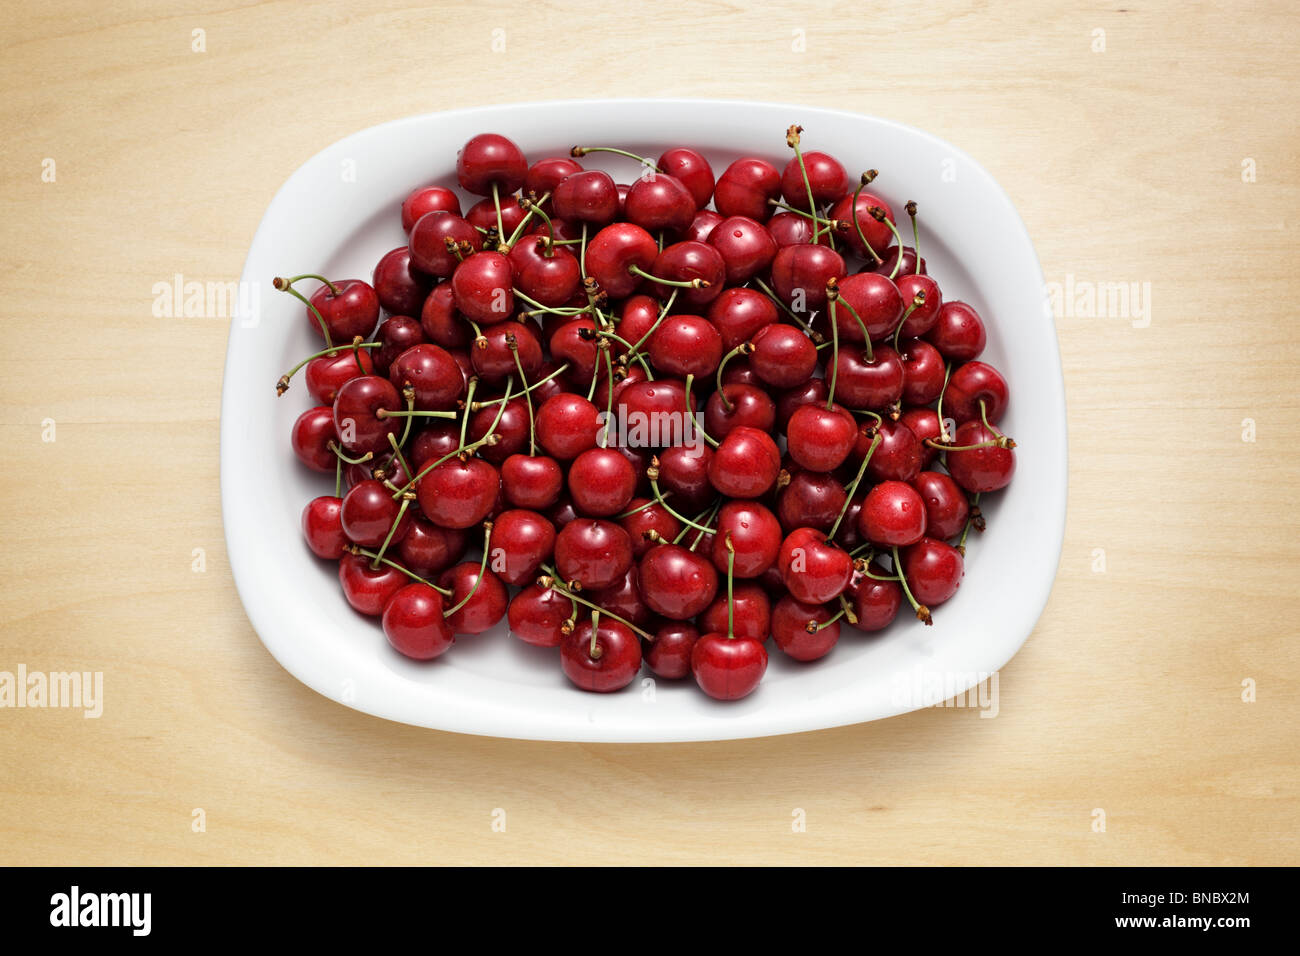 Plate with sweet cherries Stock Photo